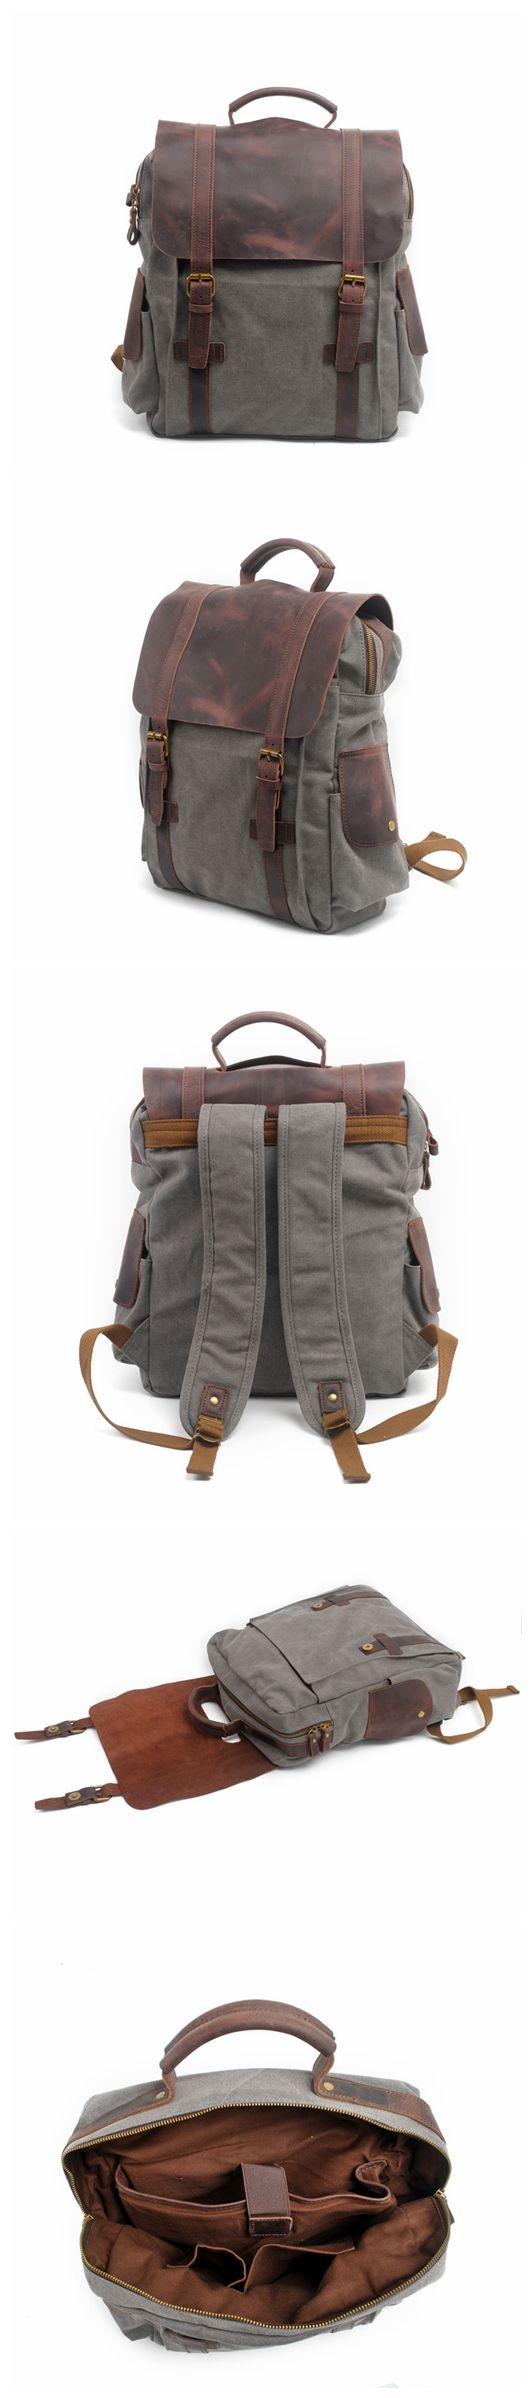 Moshi Hot Sale Canvas Leather Backpack, Waxed Canvas Backpack School Backpack